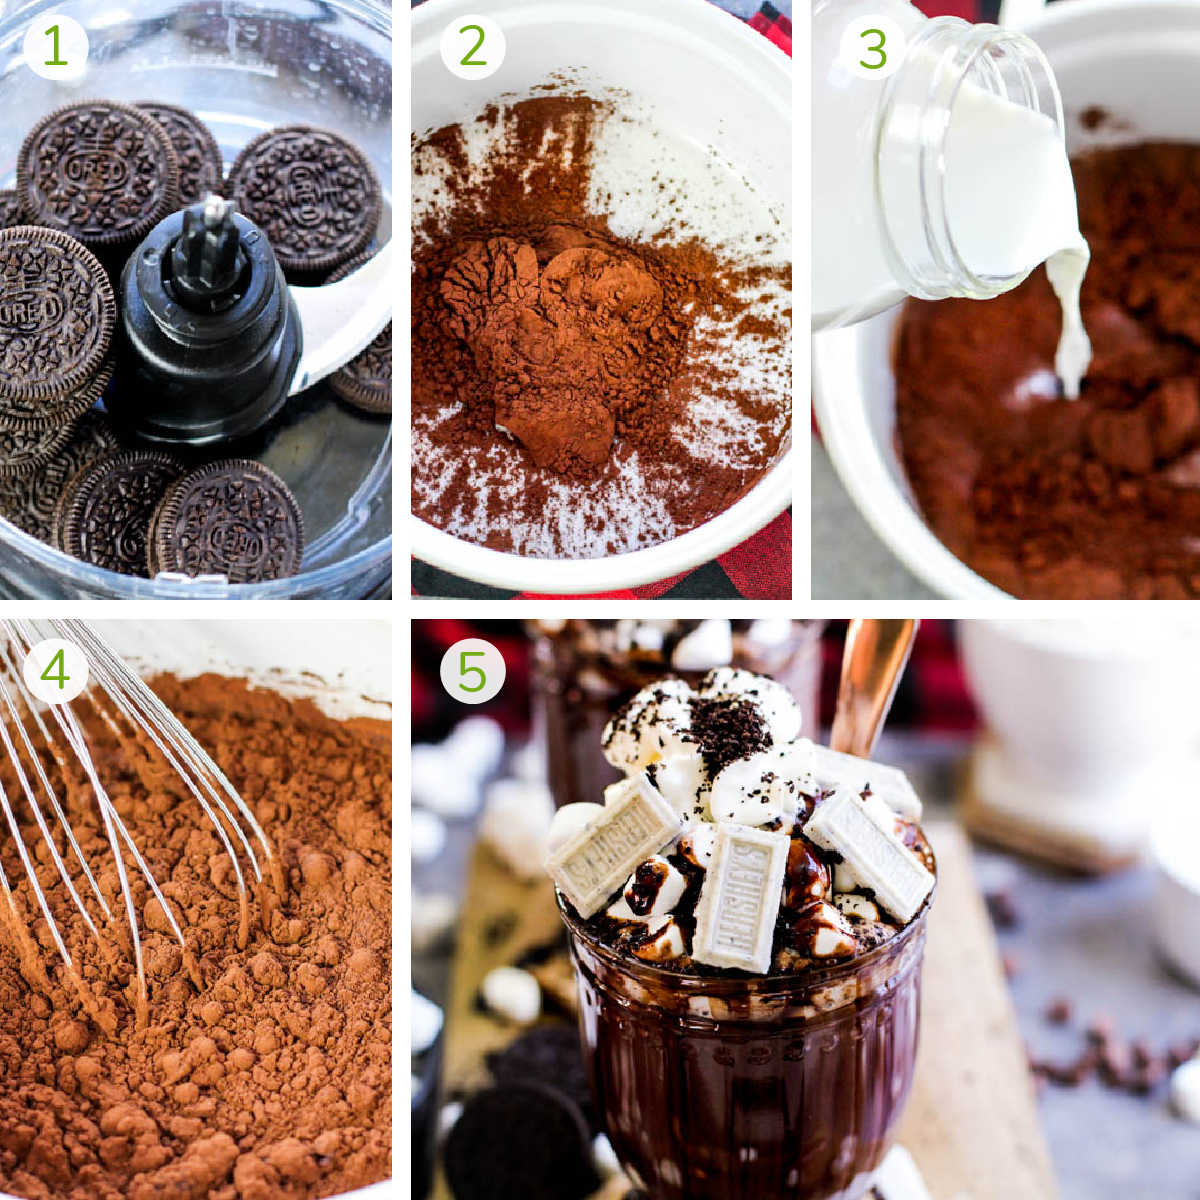 simple instructions including crushing oreos, adding powder and milk and assembling